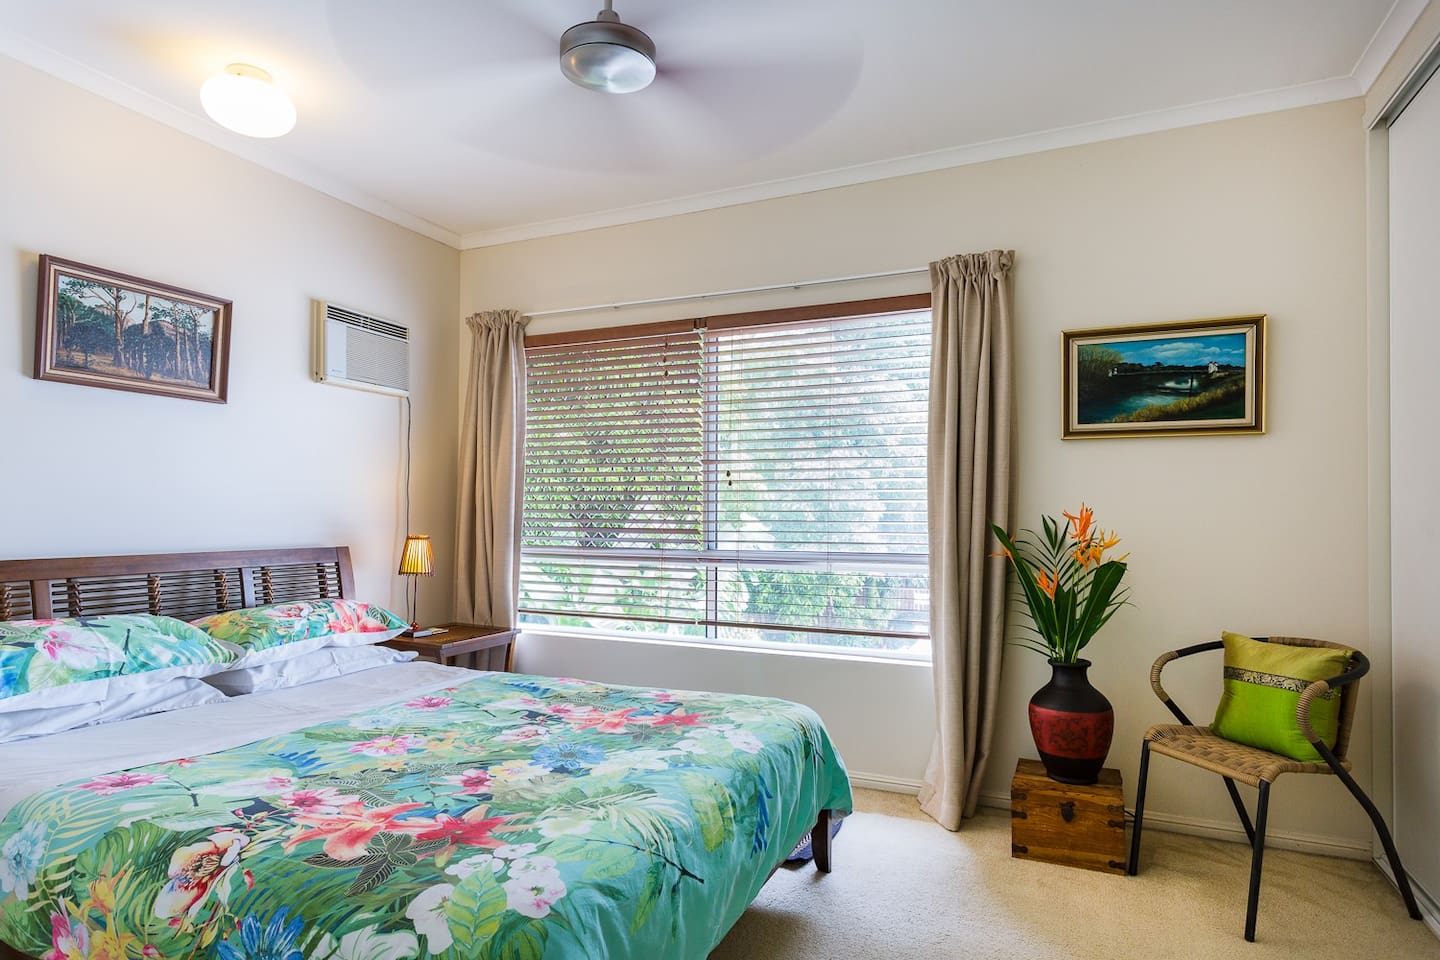 Queen size bed in main bedroom. Bright and Airy but with Blockout Curtains if needed. Plenty of wardrobe space and hangers. Small TV. Box Aircon.